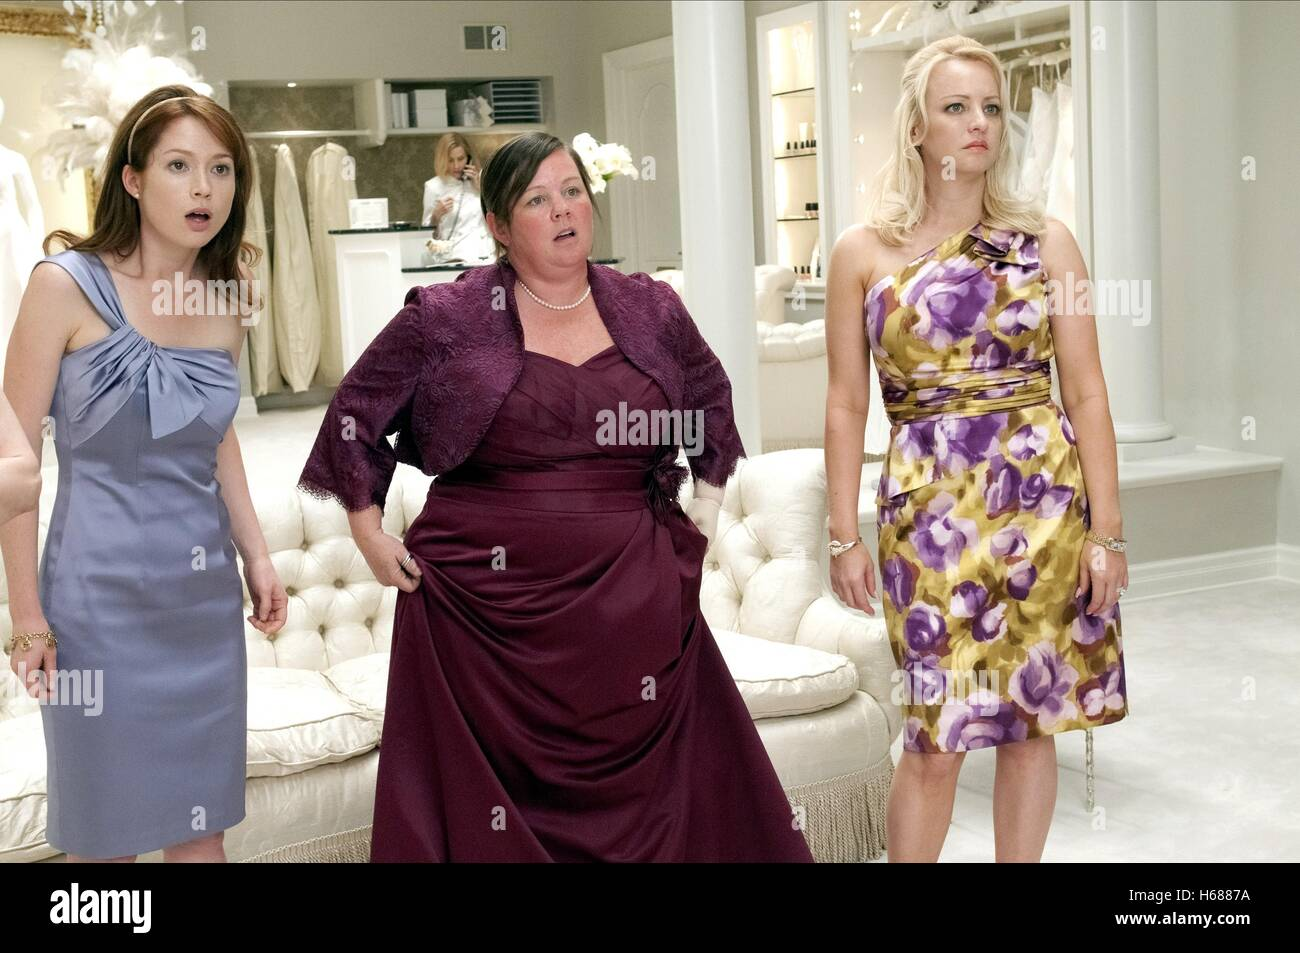 Bridesmaids 2011 High Resolution Stock Photography And Images Alamy